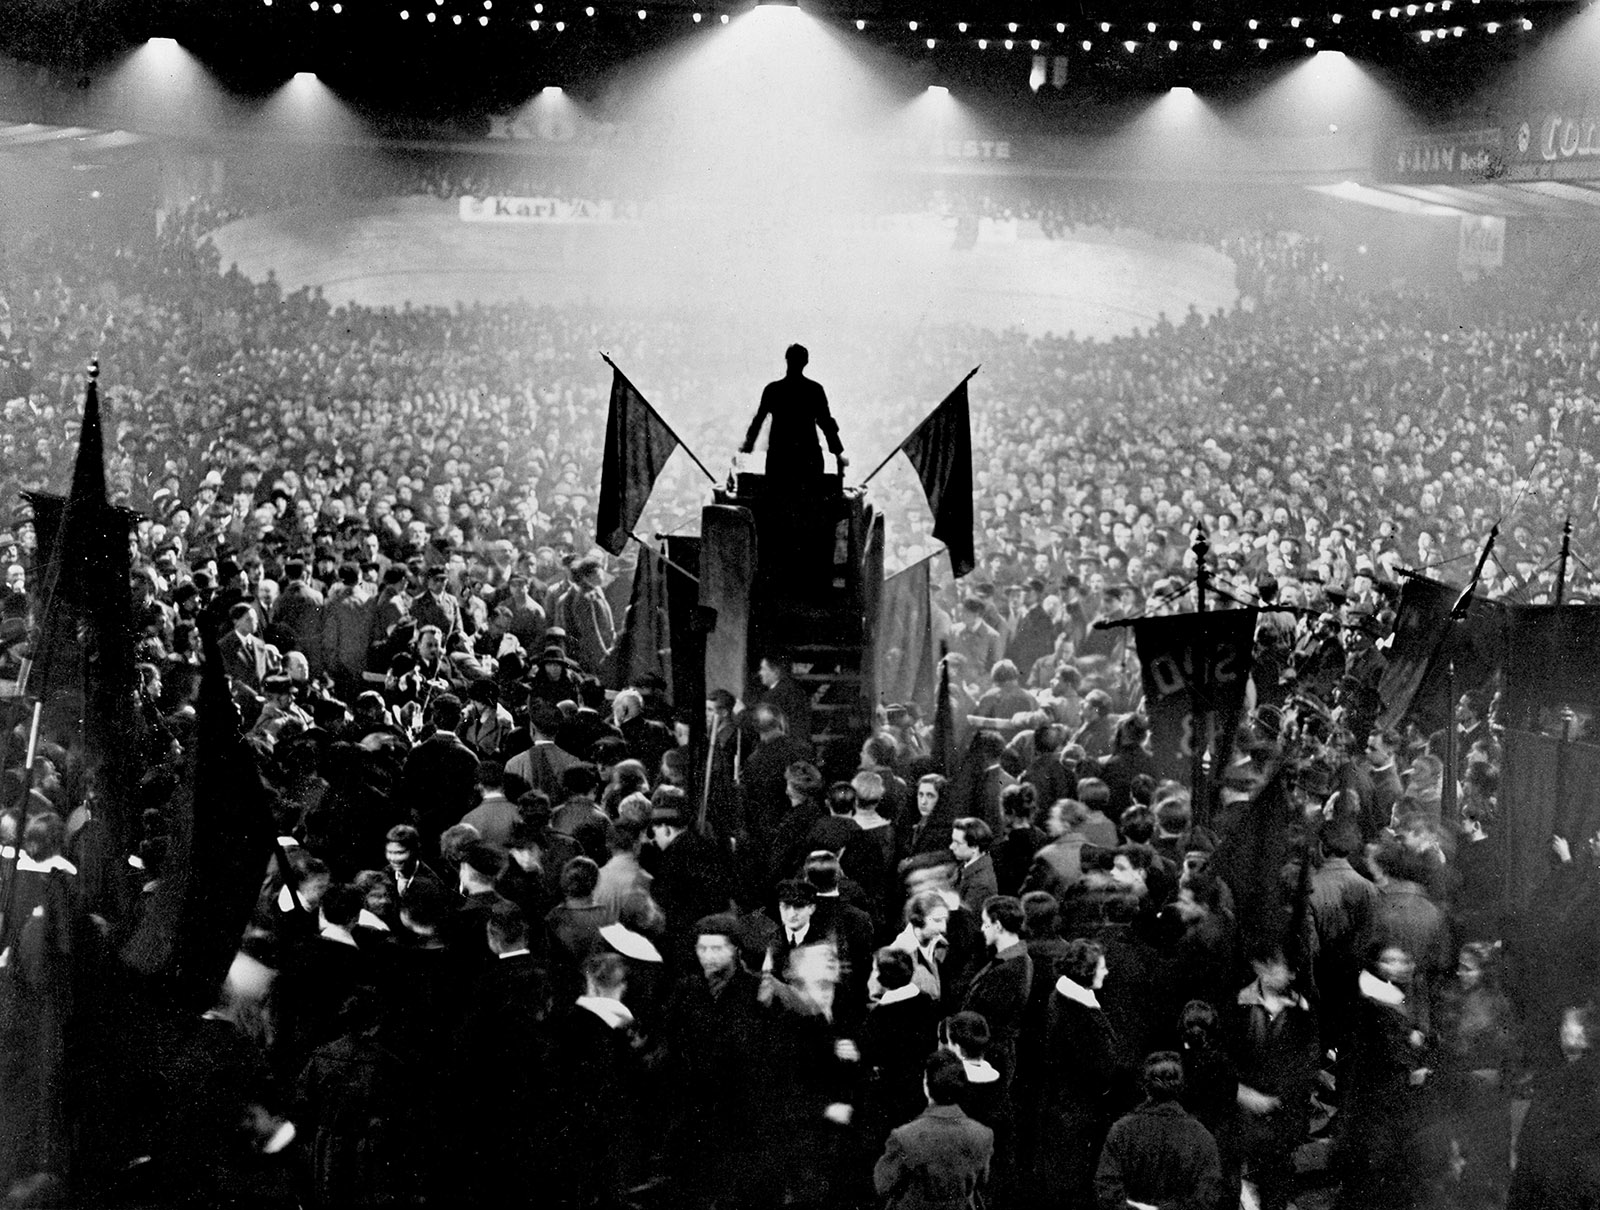 A rally in support of the Weimar Republic in the Sportpalast, Berlin, 1925